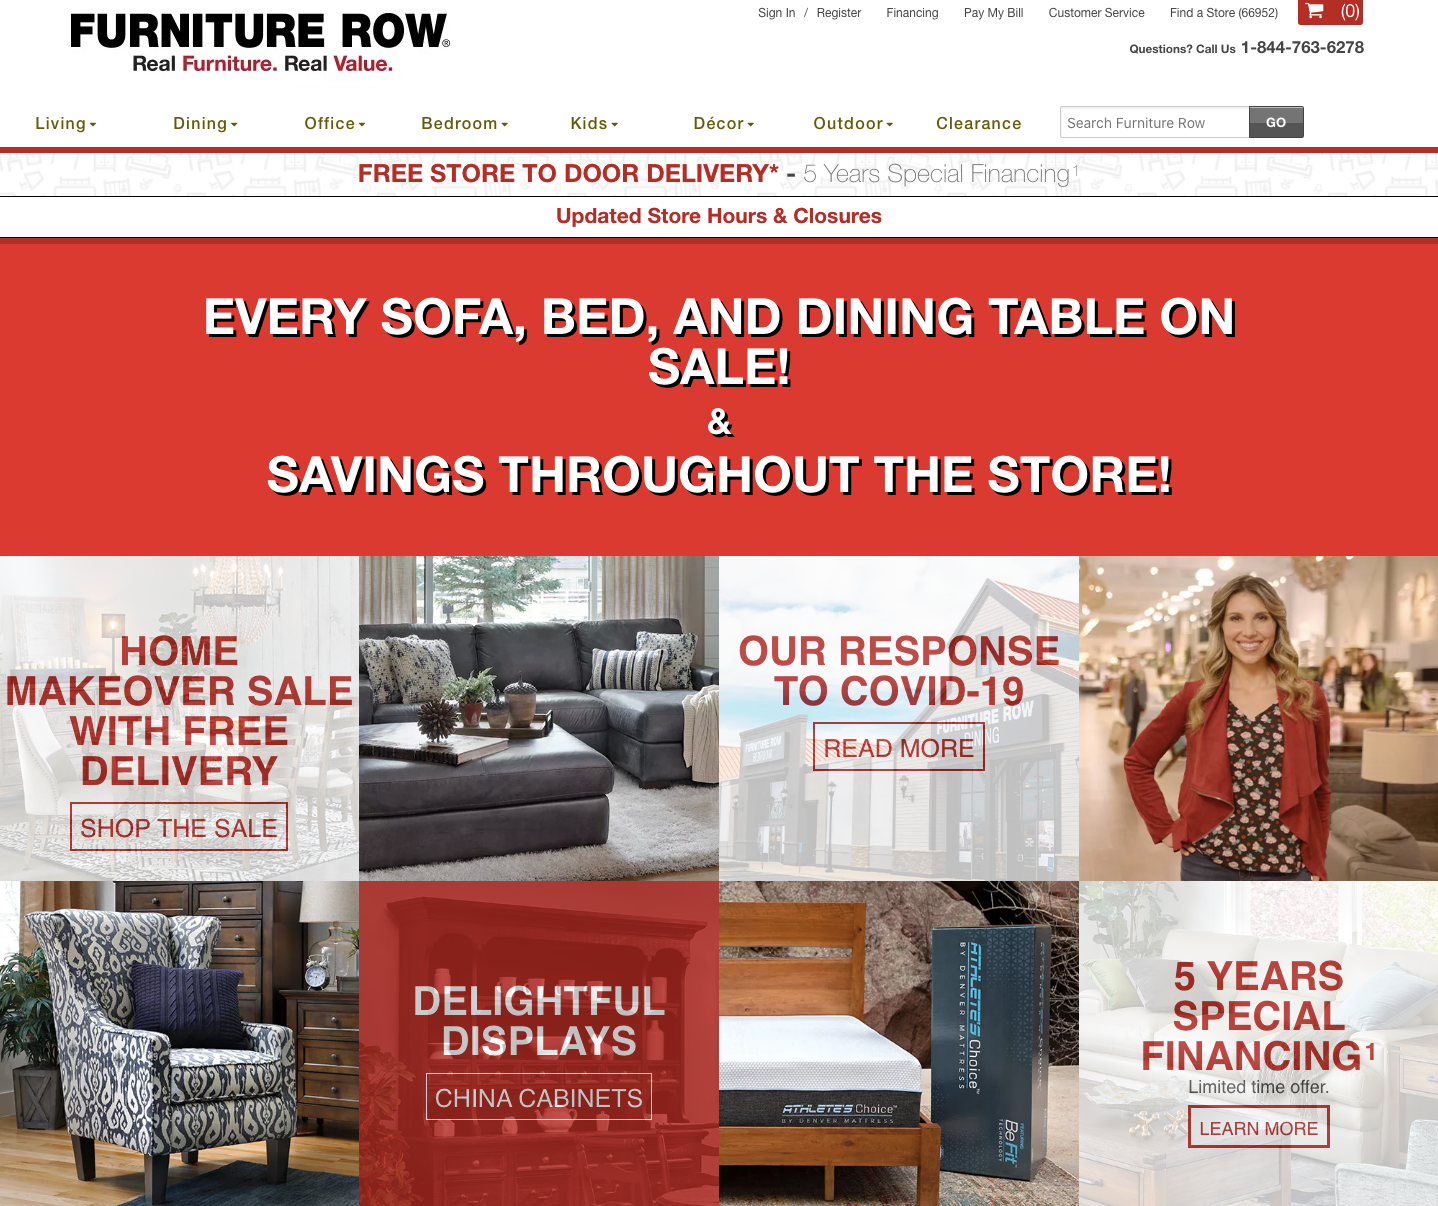 Furniture Row Credit Card Activation Login And More Digital Marketing Monastic